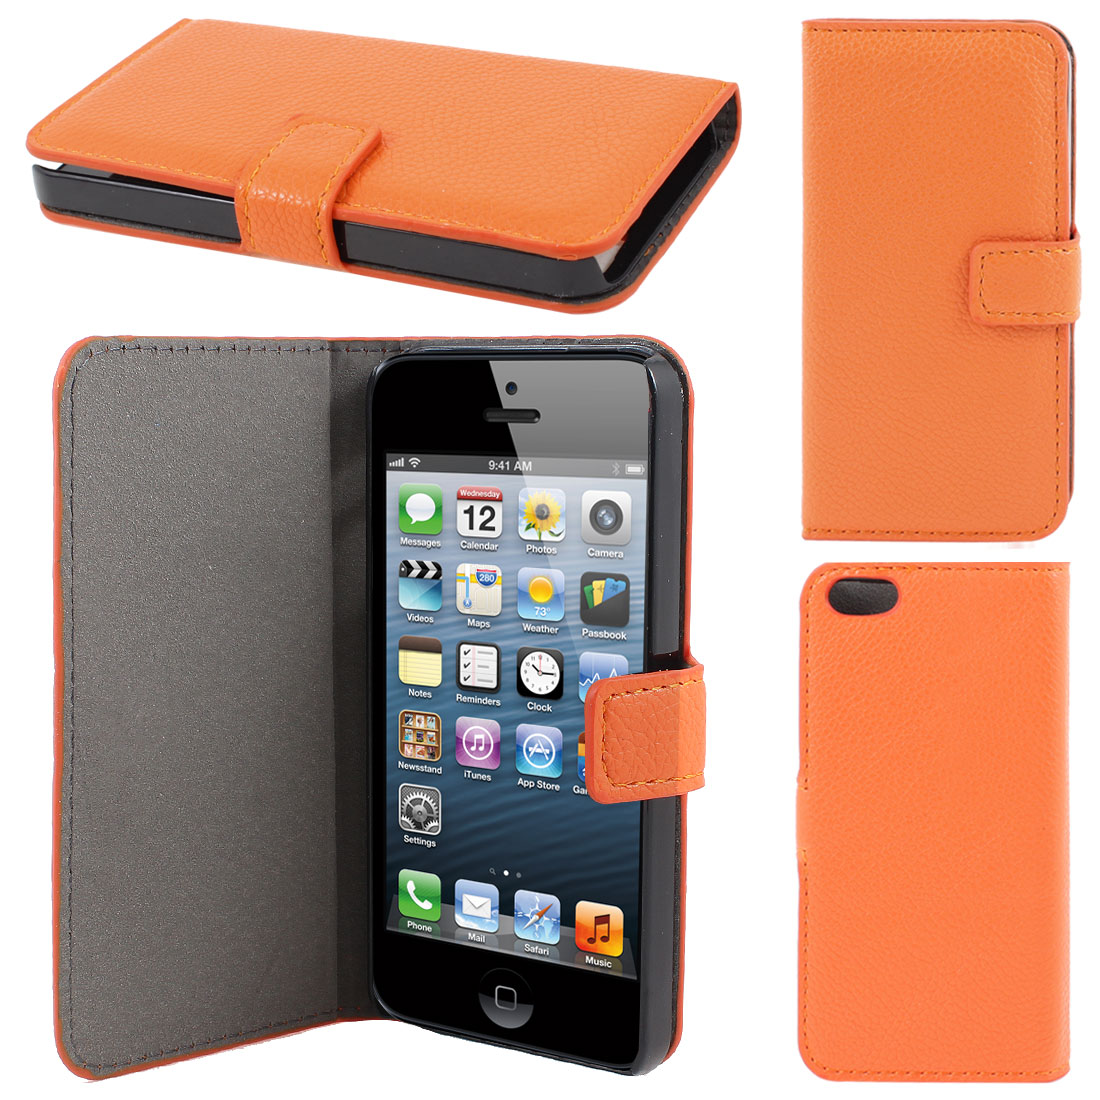 Orange Litchi Pattern Faux Leather Flip Case Cover for Apple iPhone 5 5G